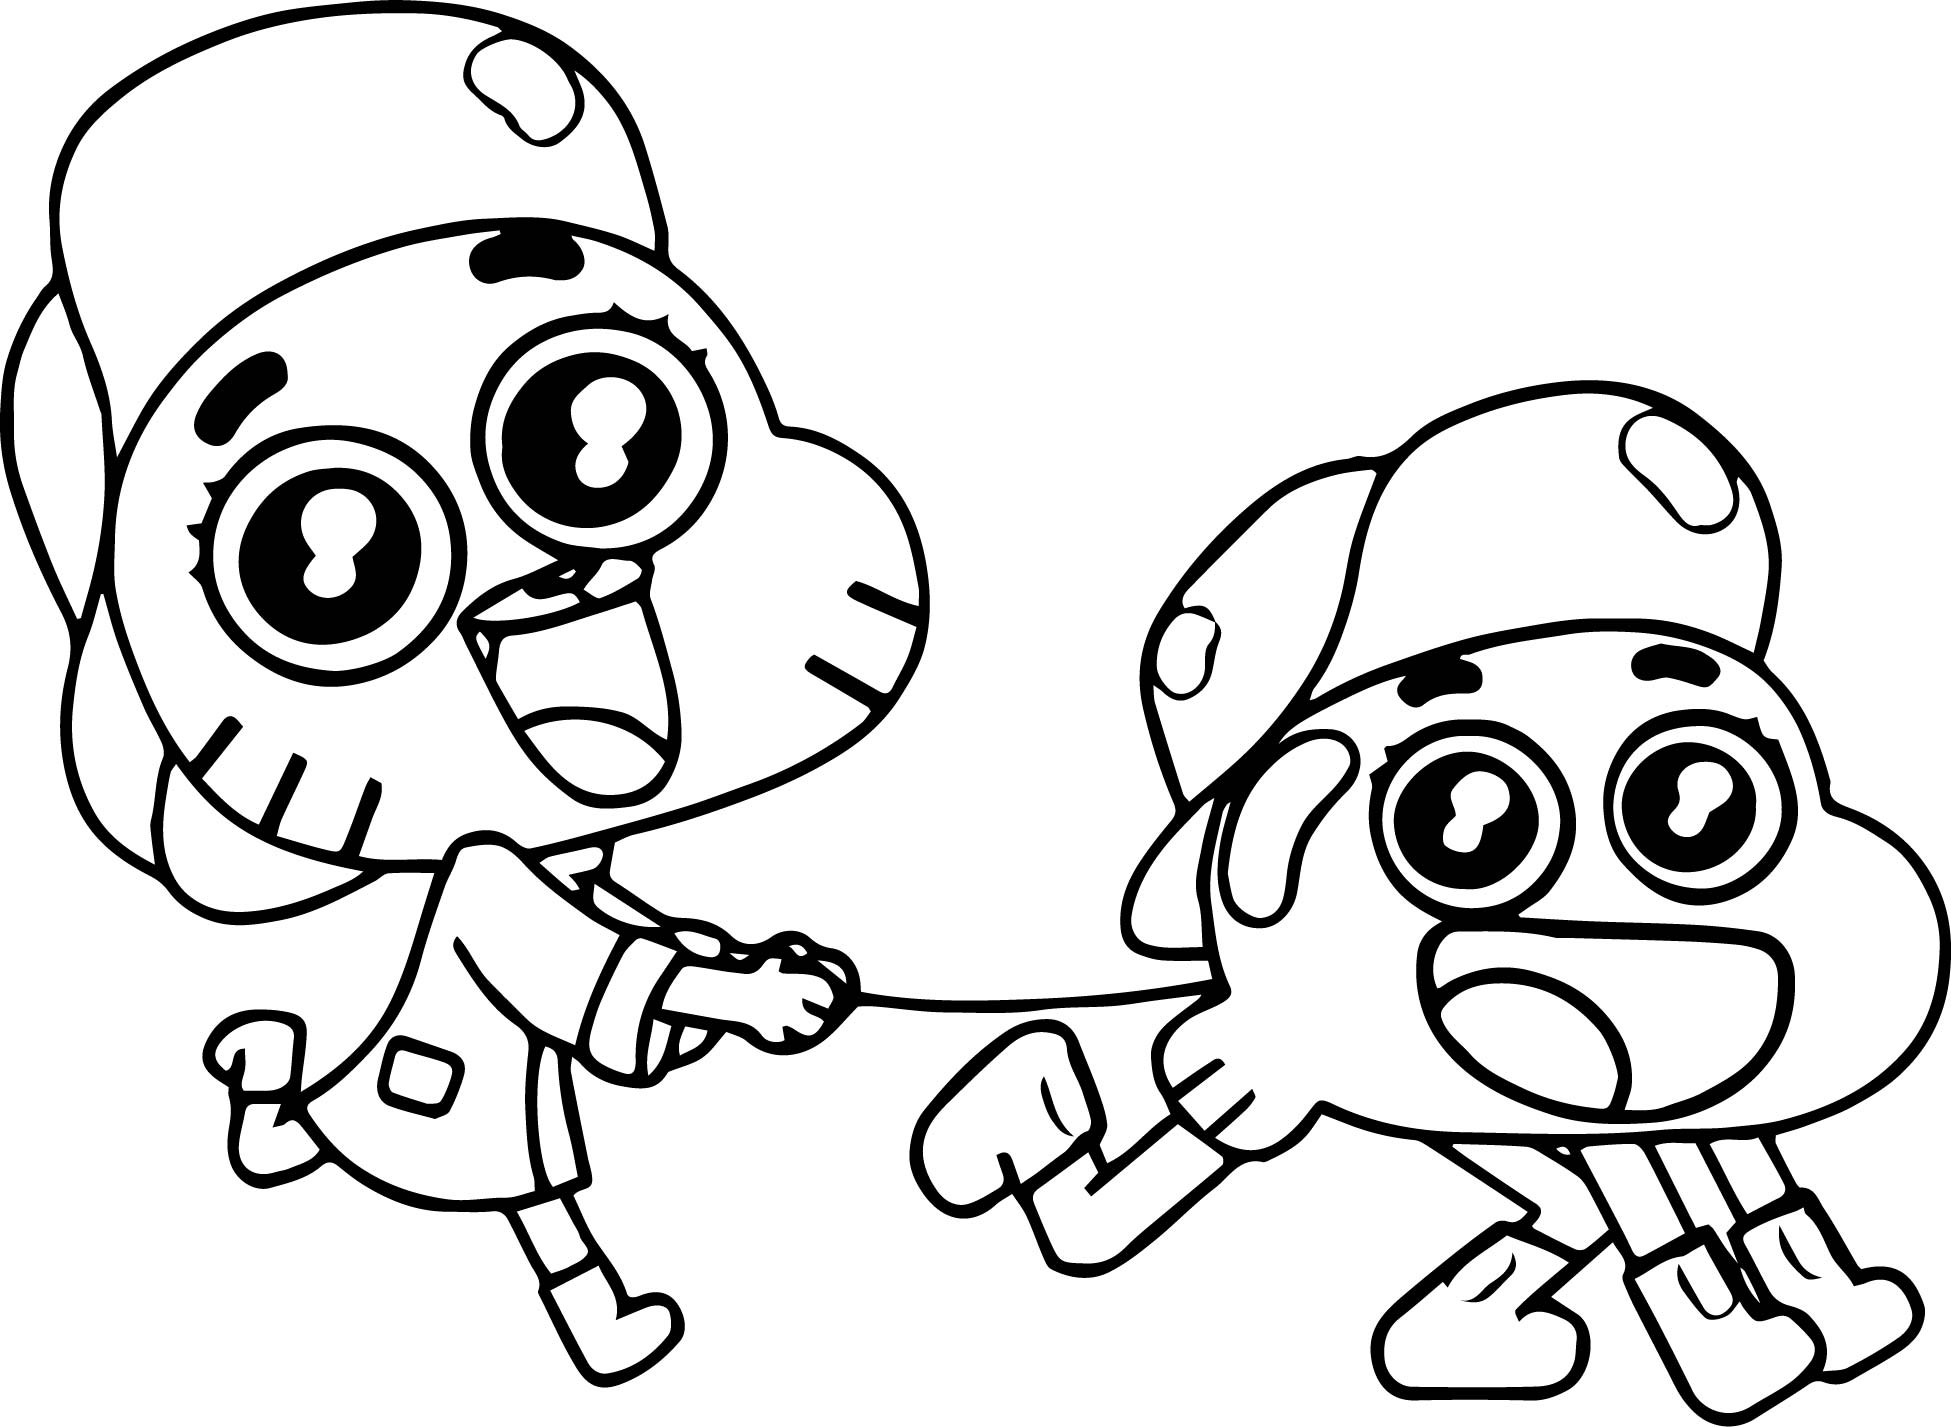 gumball darwin coloring pages - photo#19